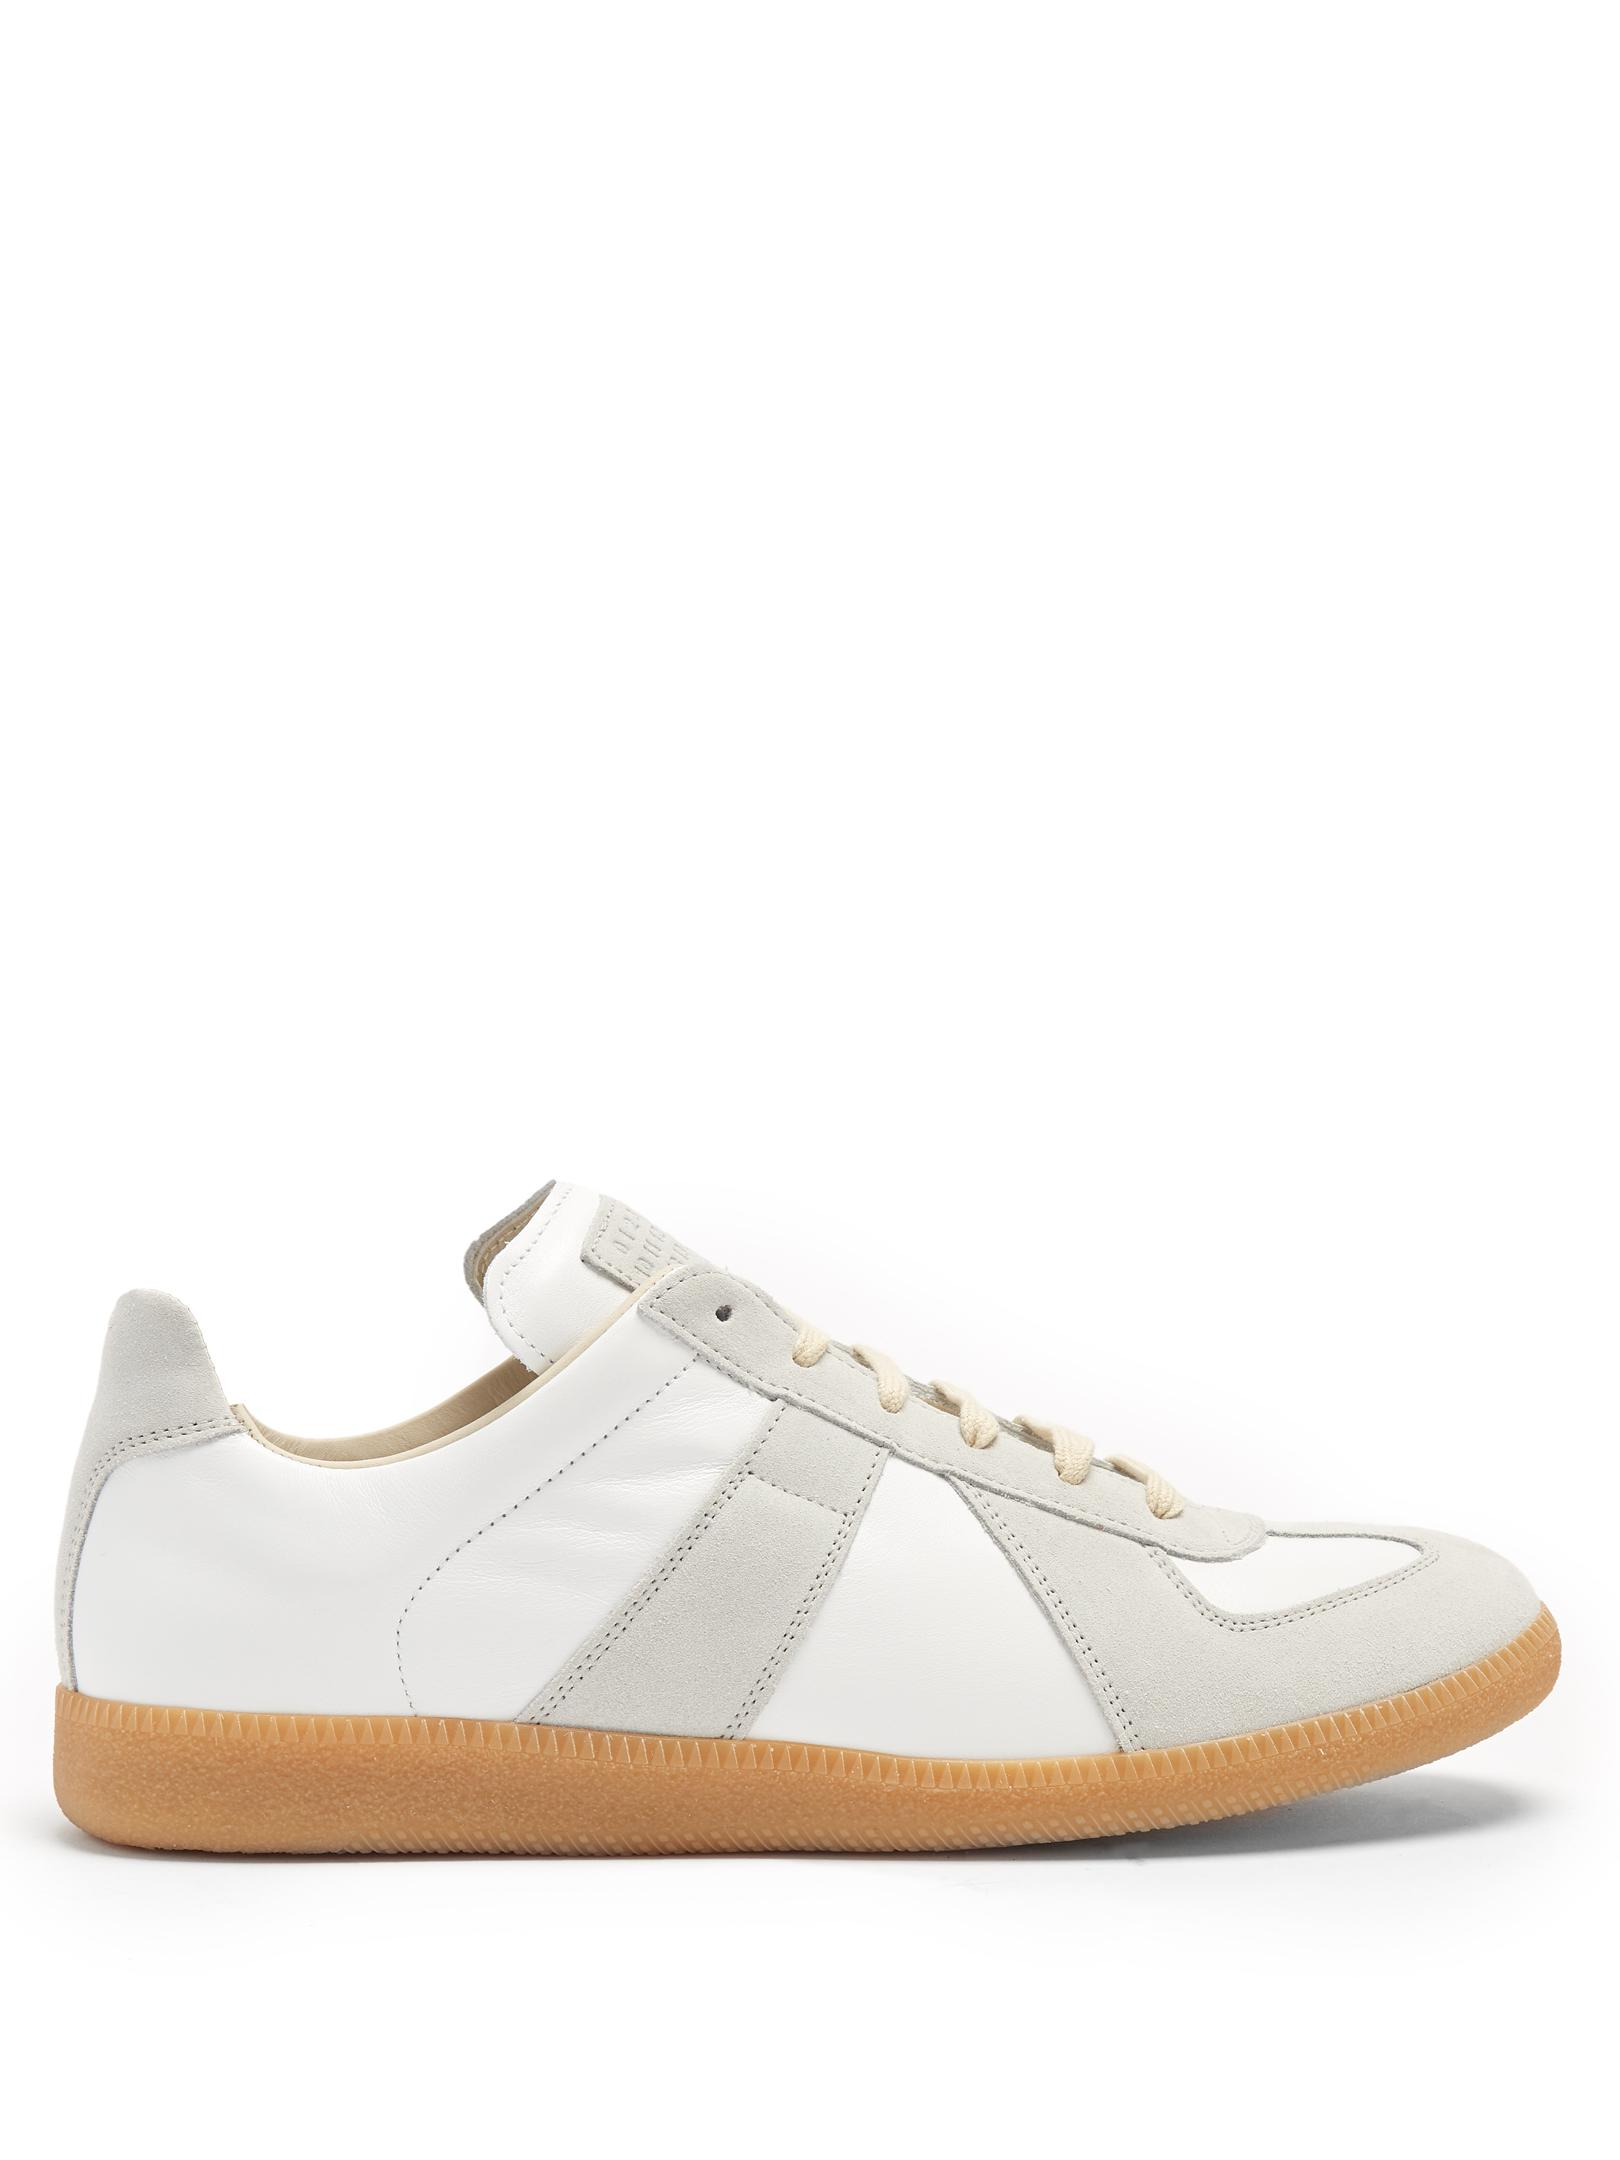 Replica suede-panel low-top leather trainers Maison Martin Margiela 5SrA1BB6